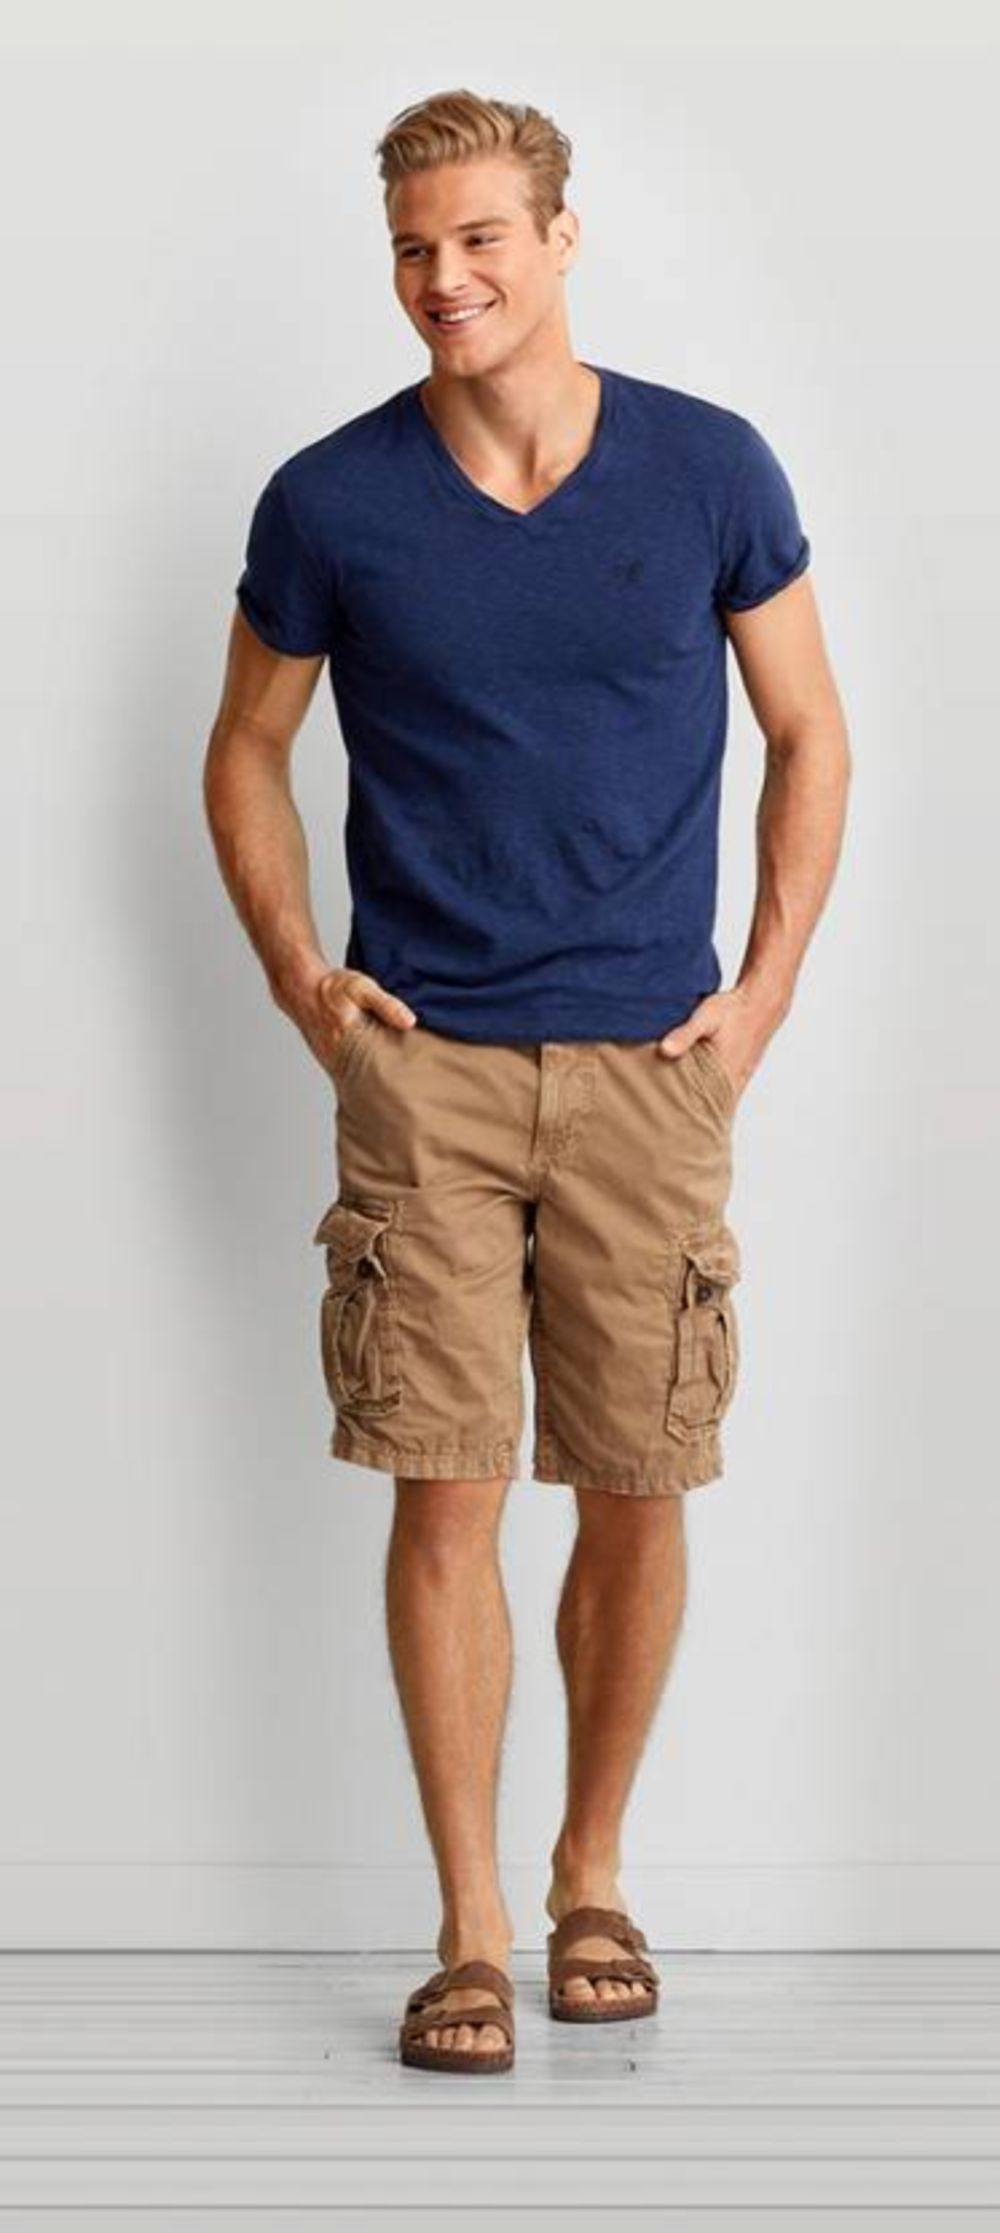 Men's Olive Crew-neck T-shirt, Tan Shorts, Tan Leather Boat Shoes ...